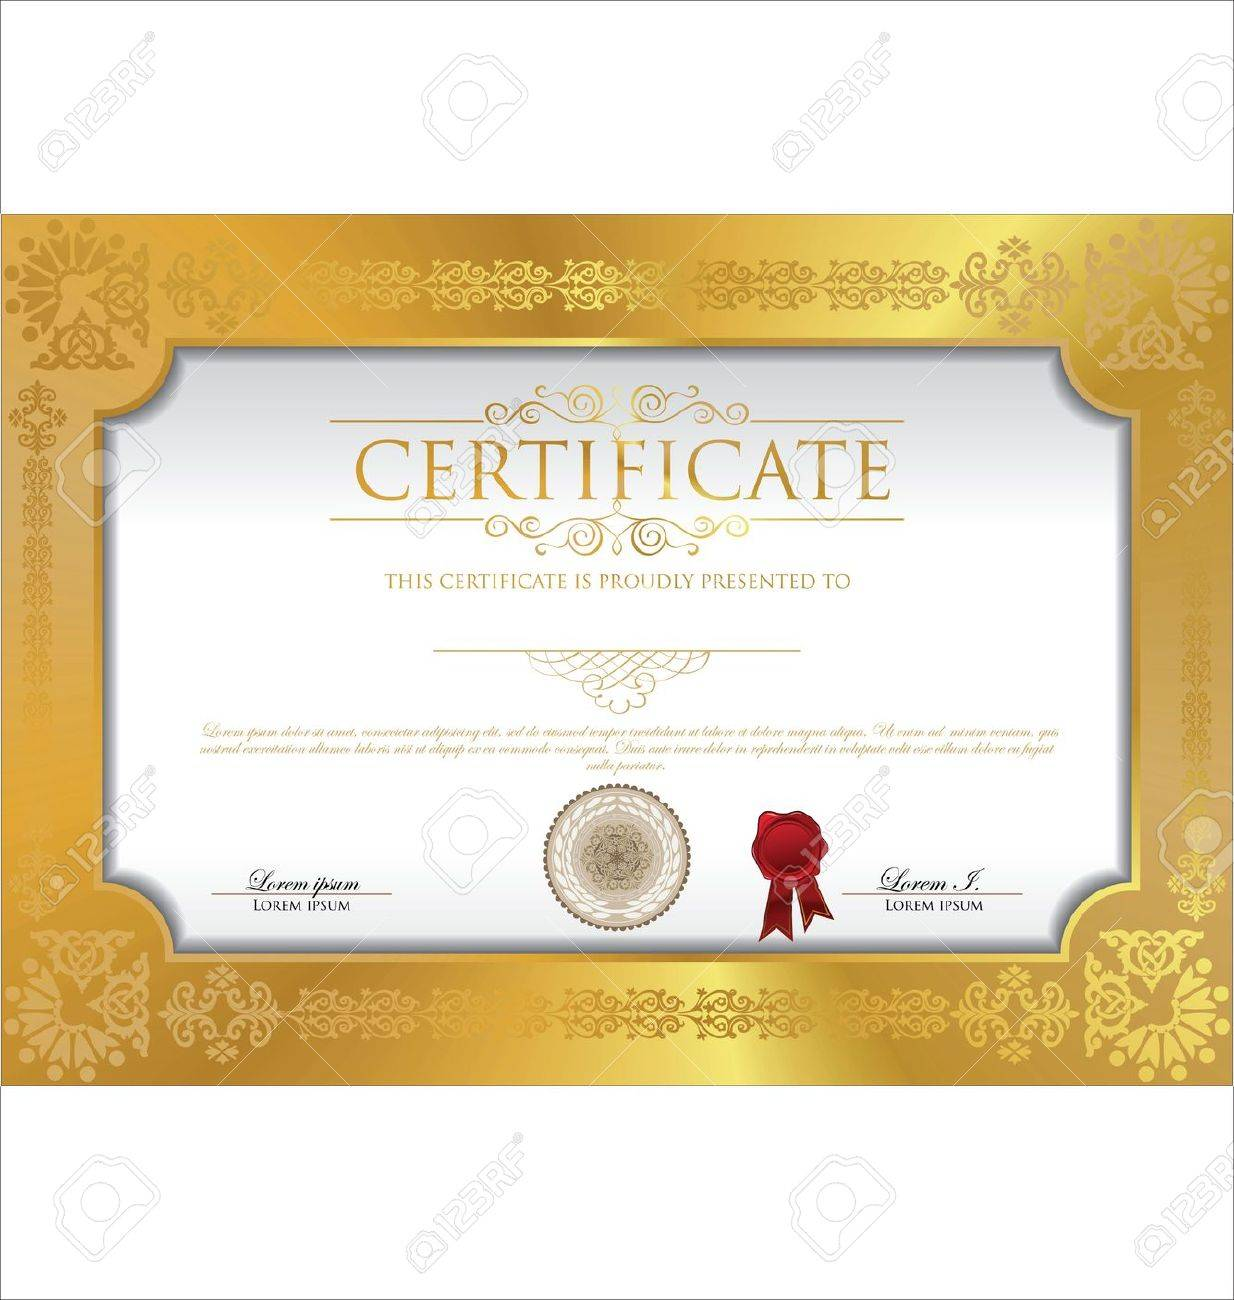 Free download stock certificate template images certificate vector stock certificate template gallery certificate design and certificate templates vector free download gallery templates certificate xflitez Gallery